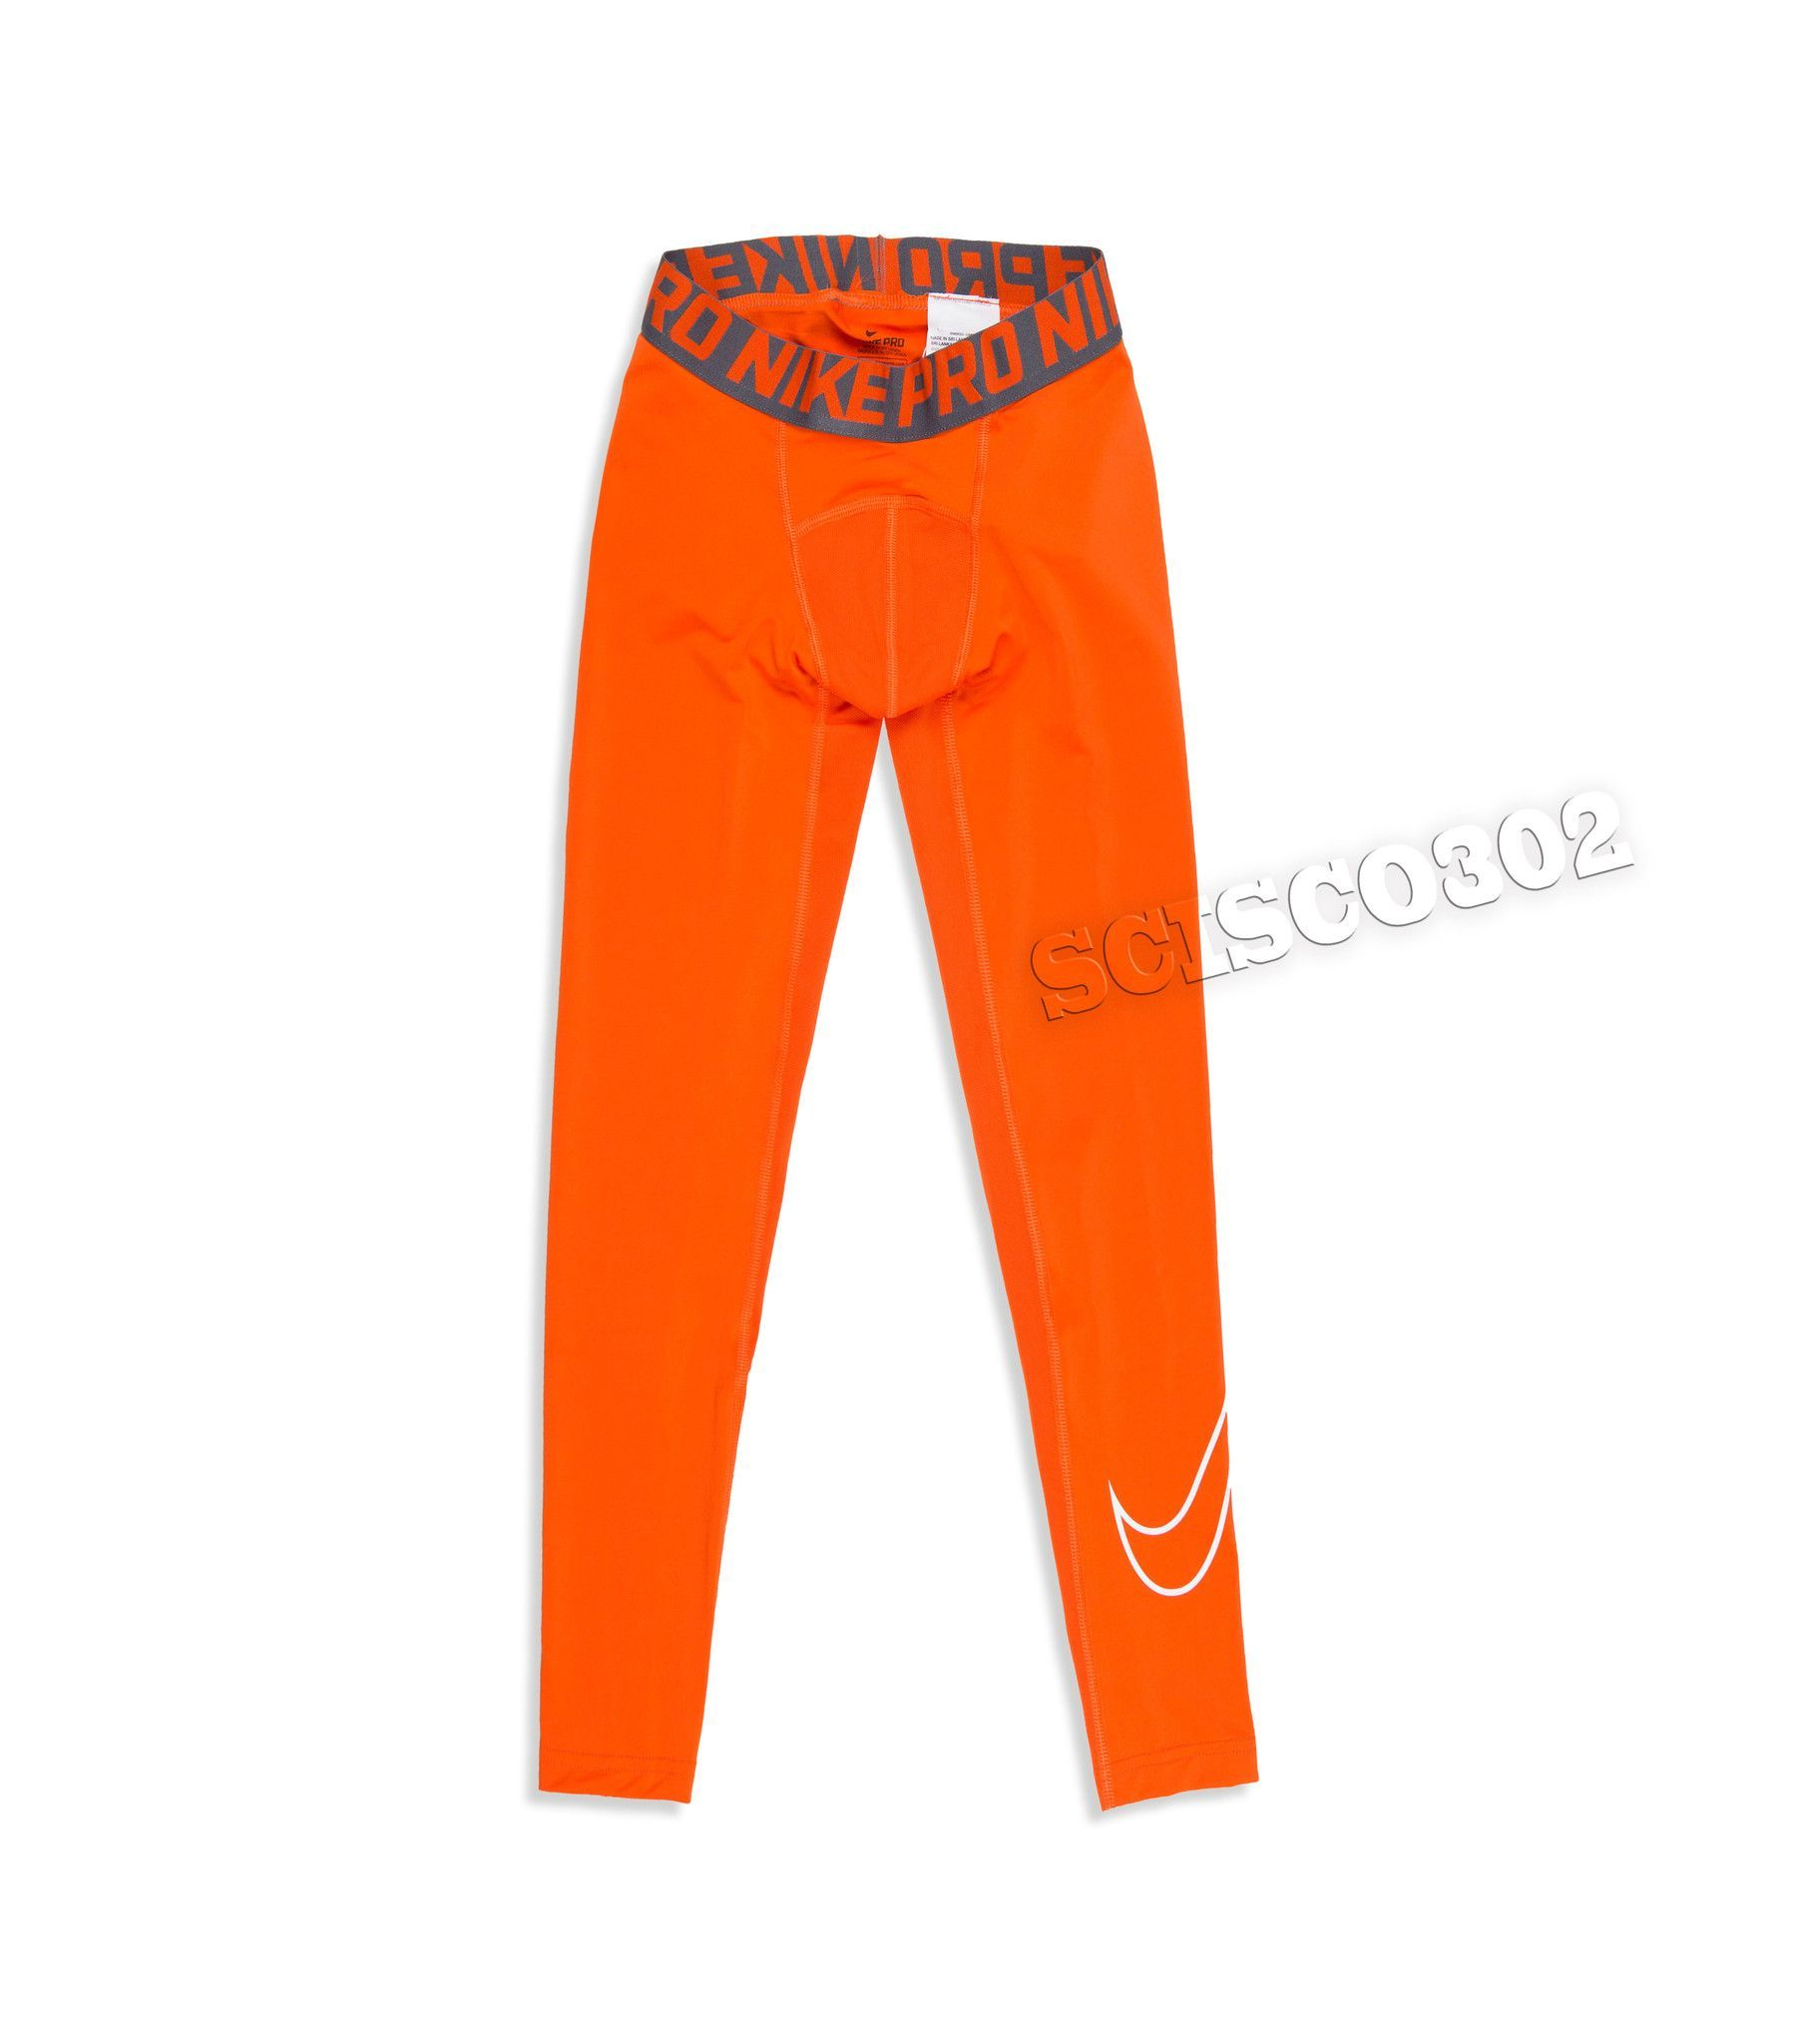 345f0faf5cb48 100% Original Nike Product Style: Boy's Nike Pro Combat Compression Tights  Leggings Color: Orange Material: 90% Polyester, 10% Spandex Nike Model  #726464 as ...